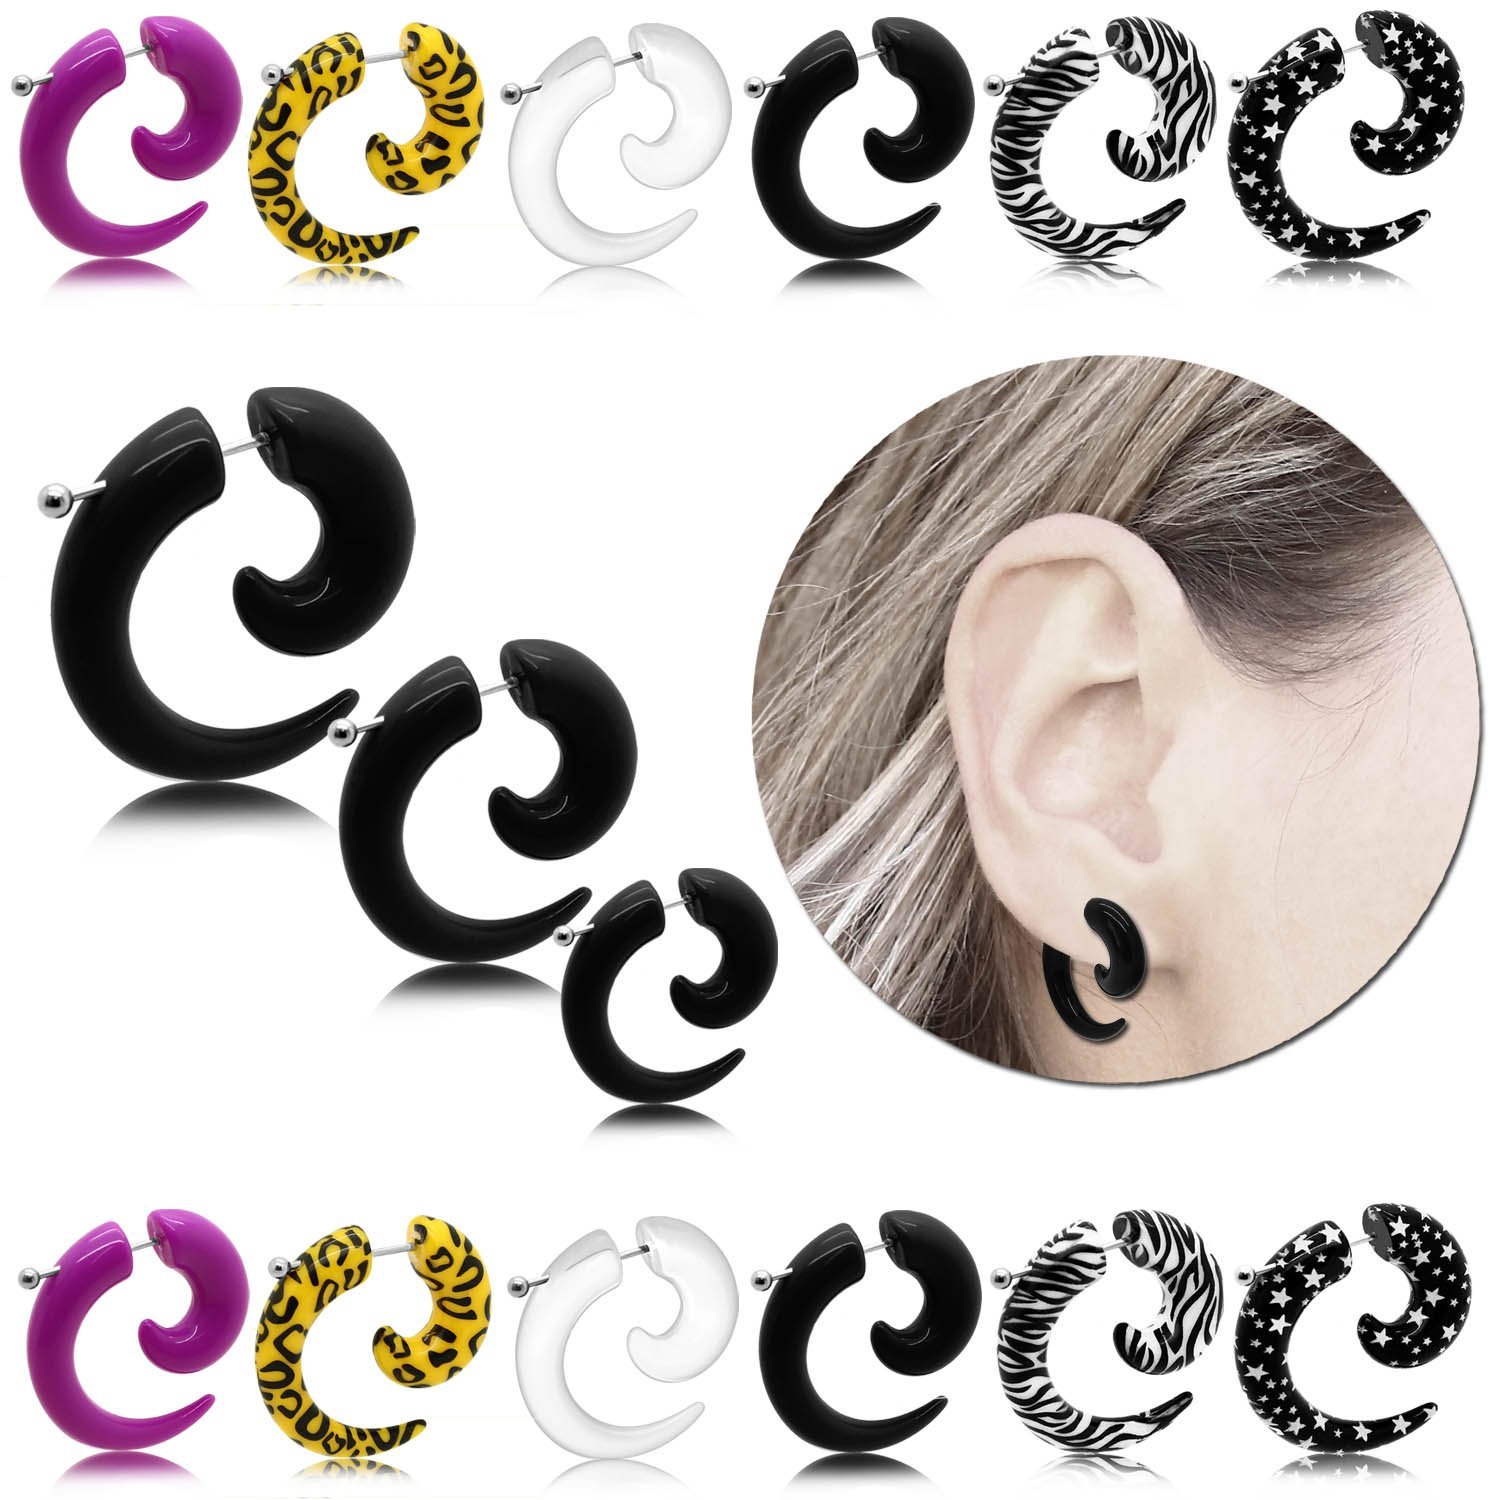 tumundo 1 Par Espiral Falso Dilatador Taper Pendientes Acrilico Fake-Plugs Piercing Color 4mm Animalprint Estrella Oreja, modelo:mod 1: Amazon.es: Joyería